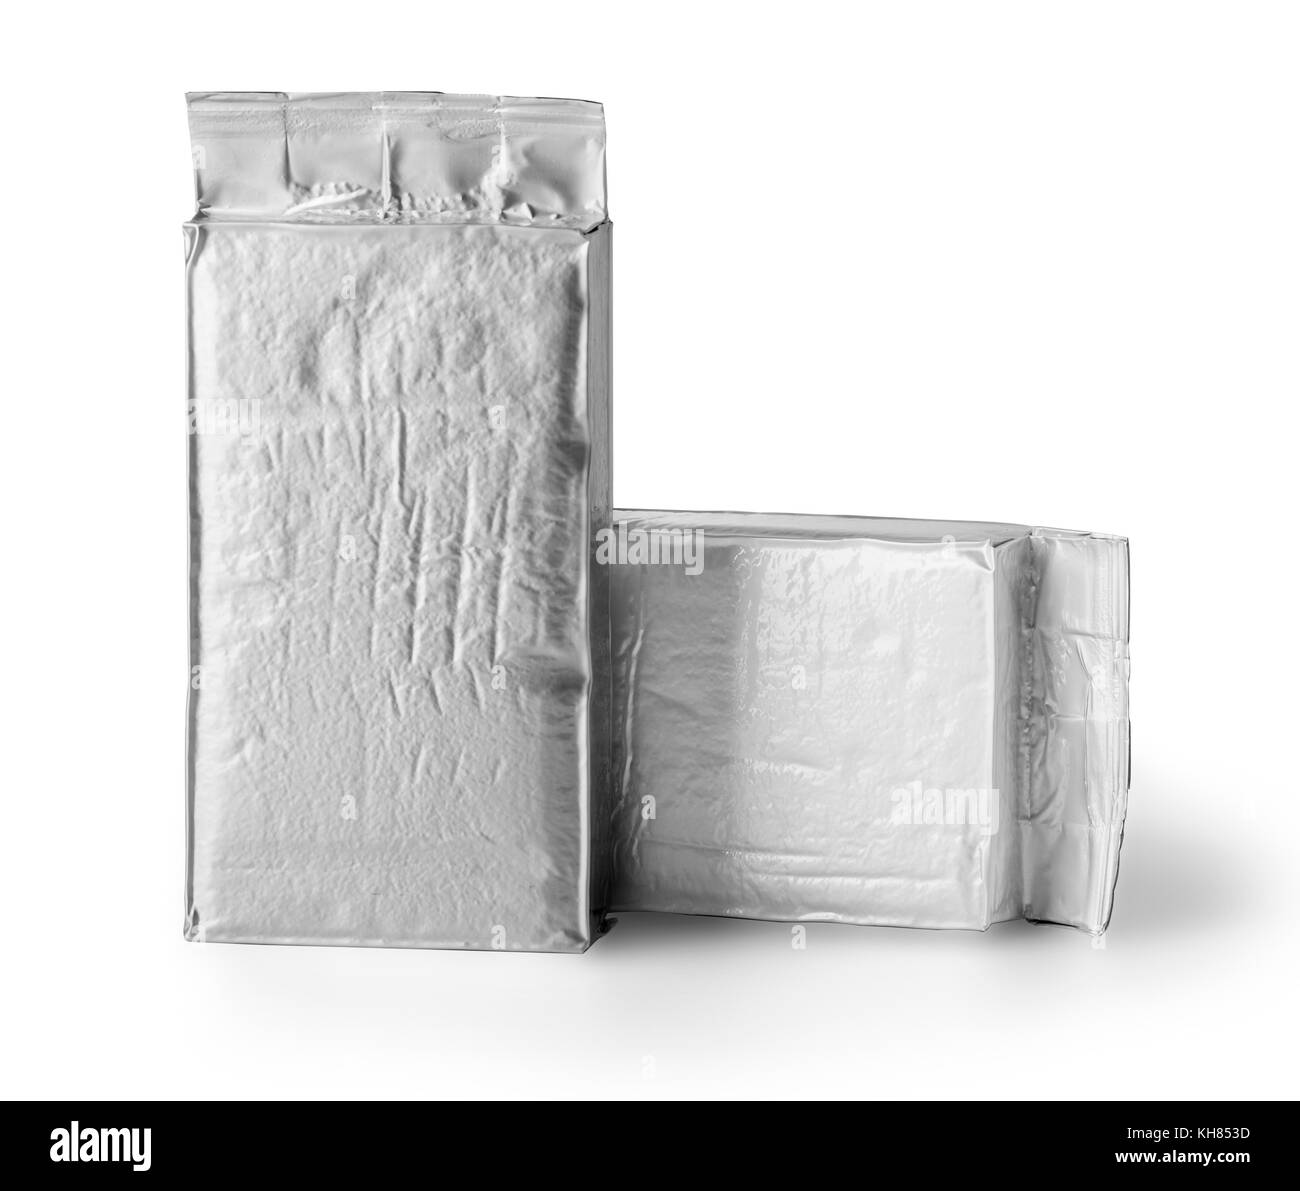 blank silver product packaging on white background - Stock Image